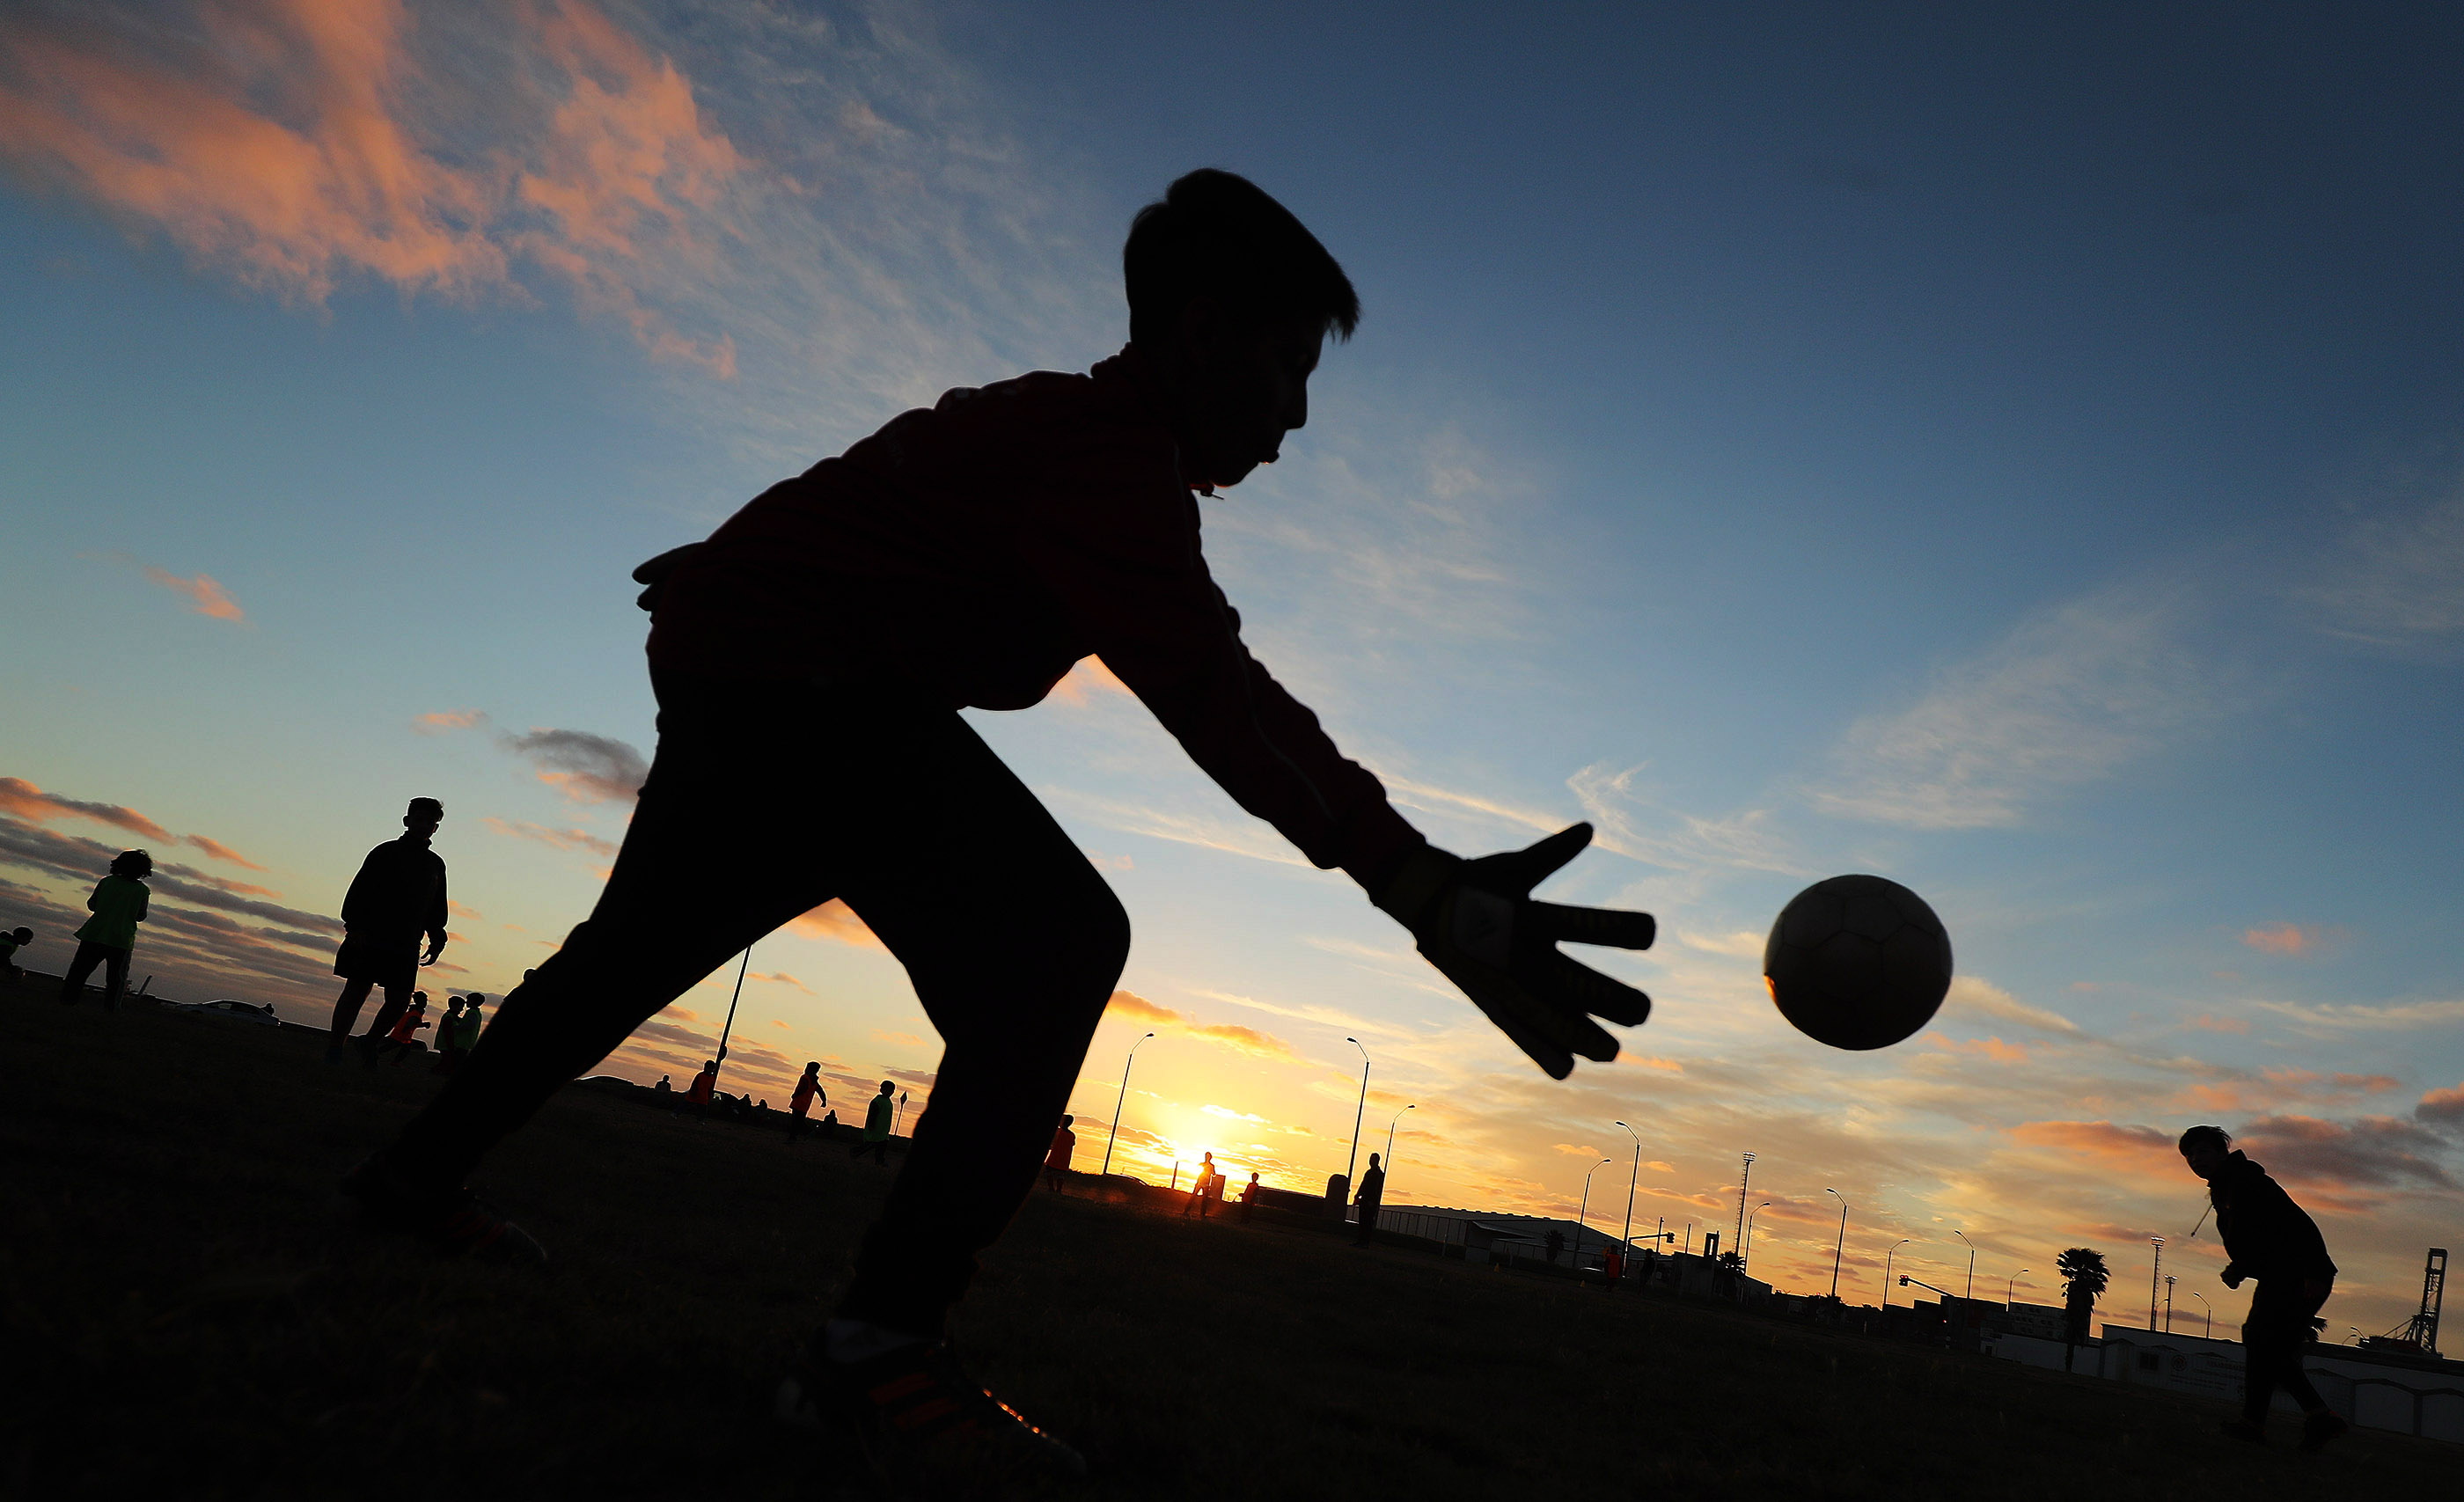 Children play soccer as the sun sets in Montevideo, Uruguay, on Oct. 23, 2018.